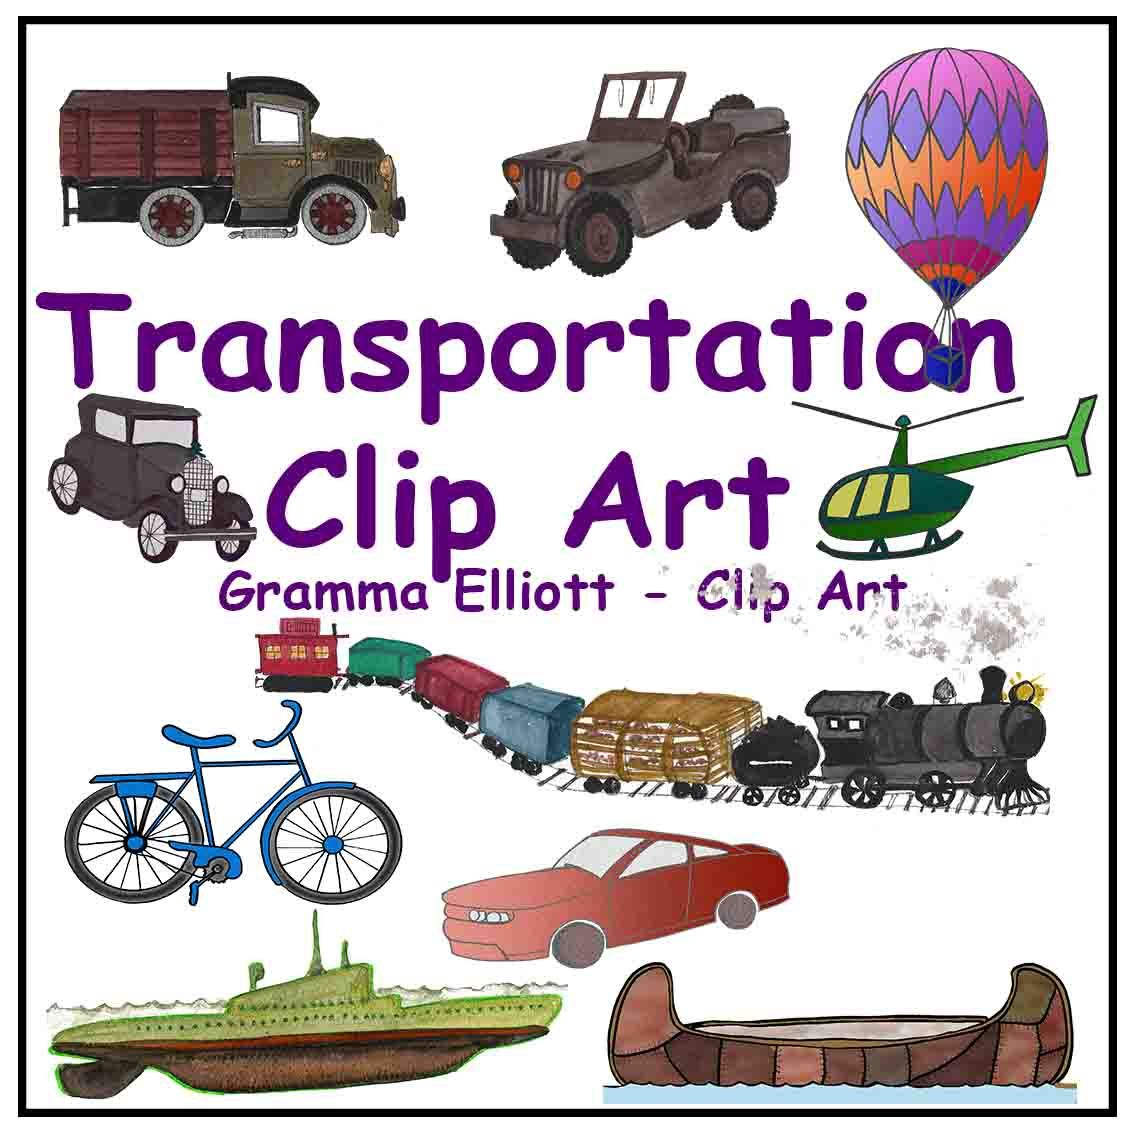 Transportation Clip Art Train Boat Canoe Helicopter Bus